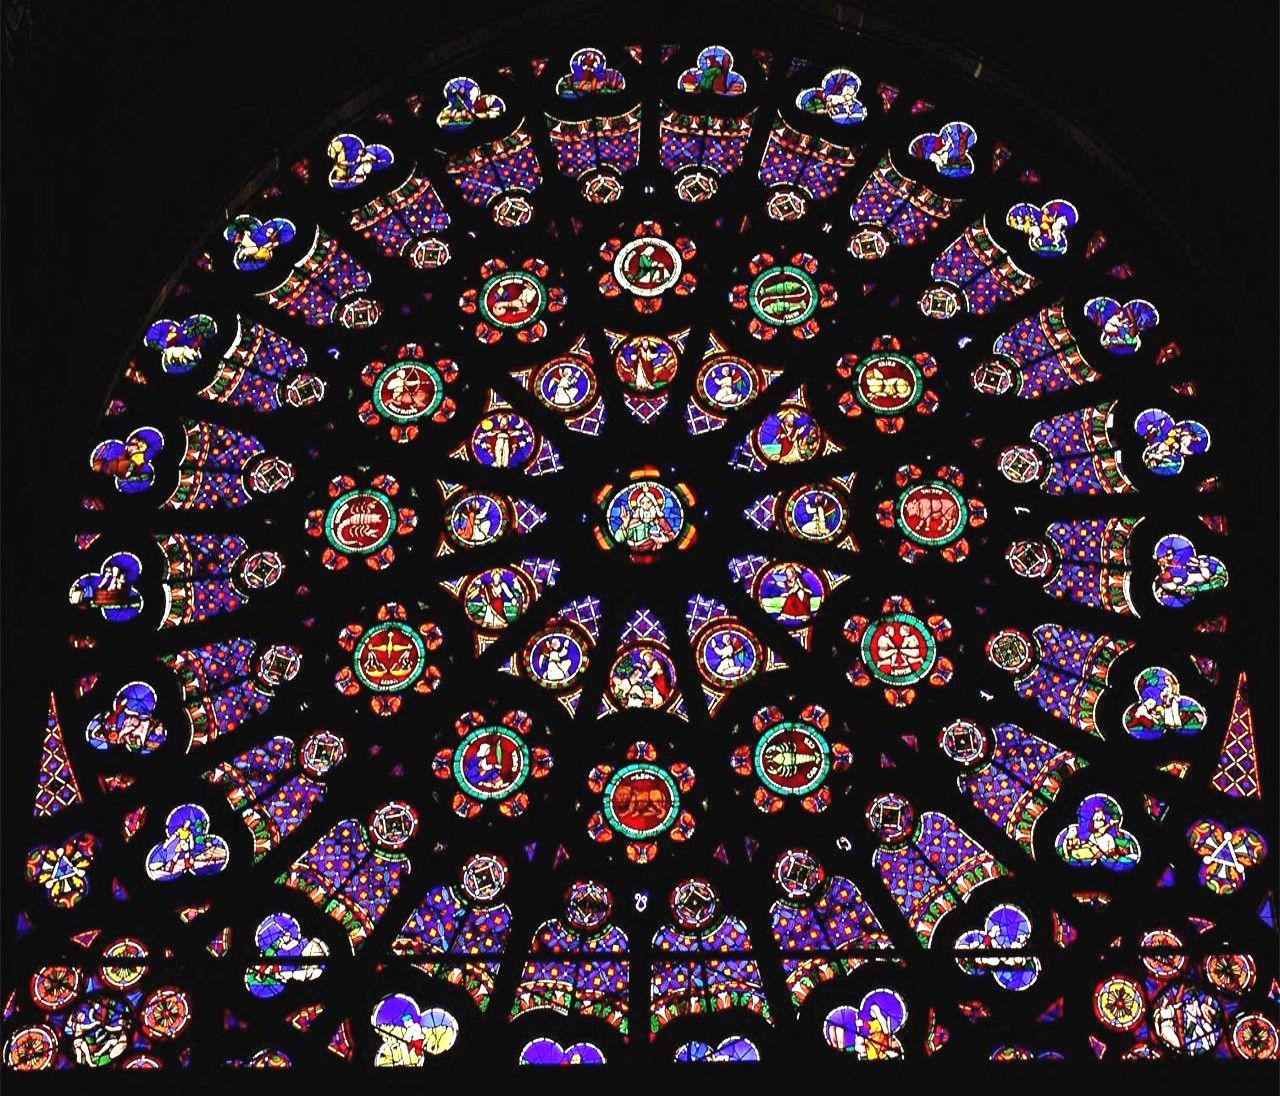 Coloring Page Rose Window At Saint Denis North Basilica Of St